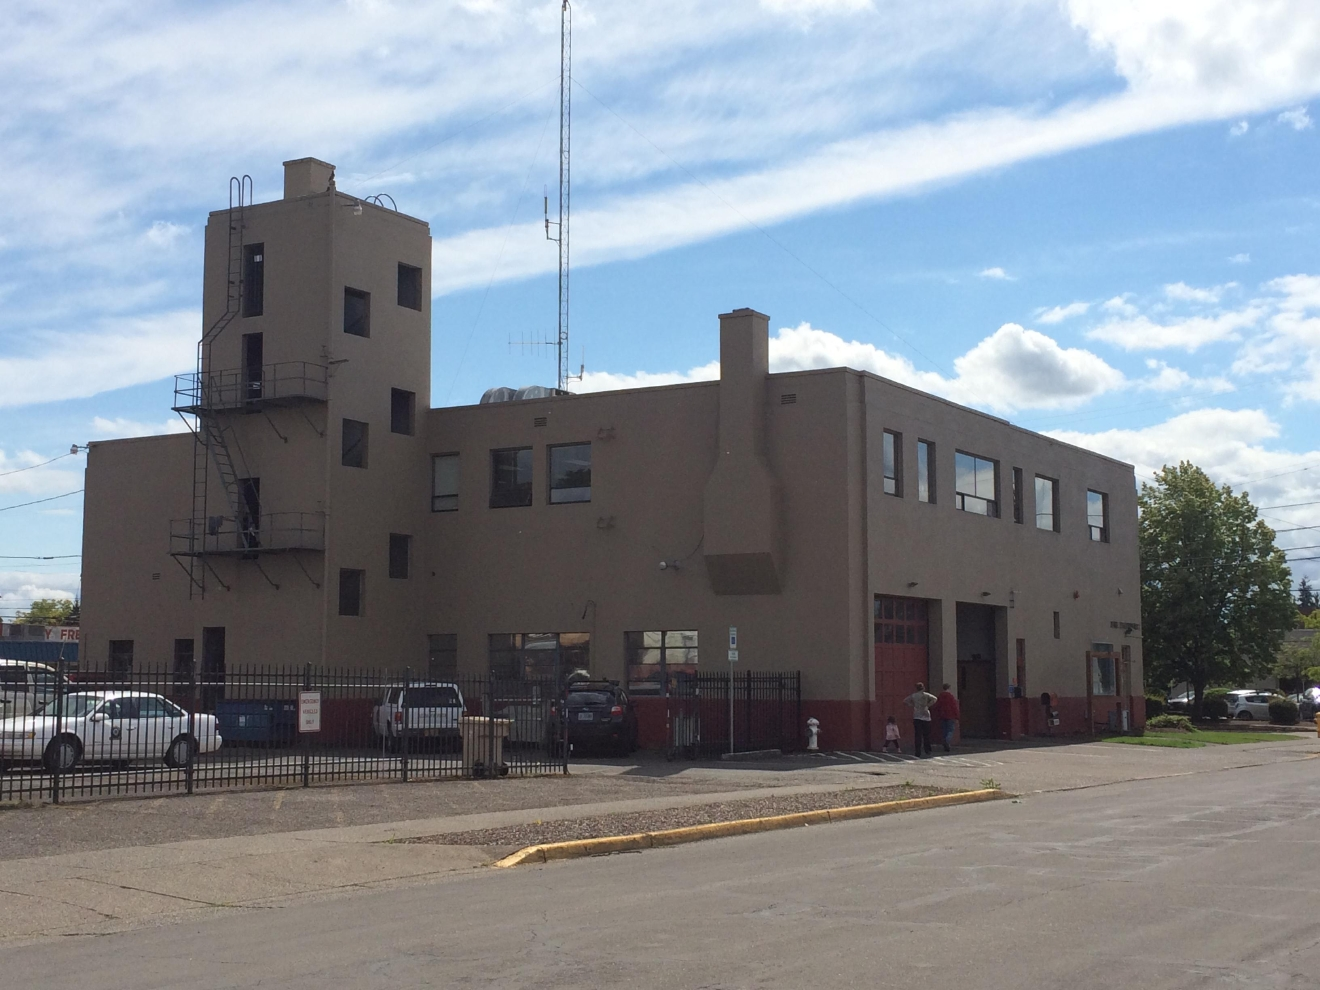 The Albany Fire Station held an open house at its downtown location. The building will soon be demolished so a safer building can replace it. Photo by Emily Higgins